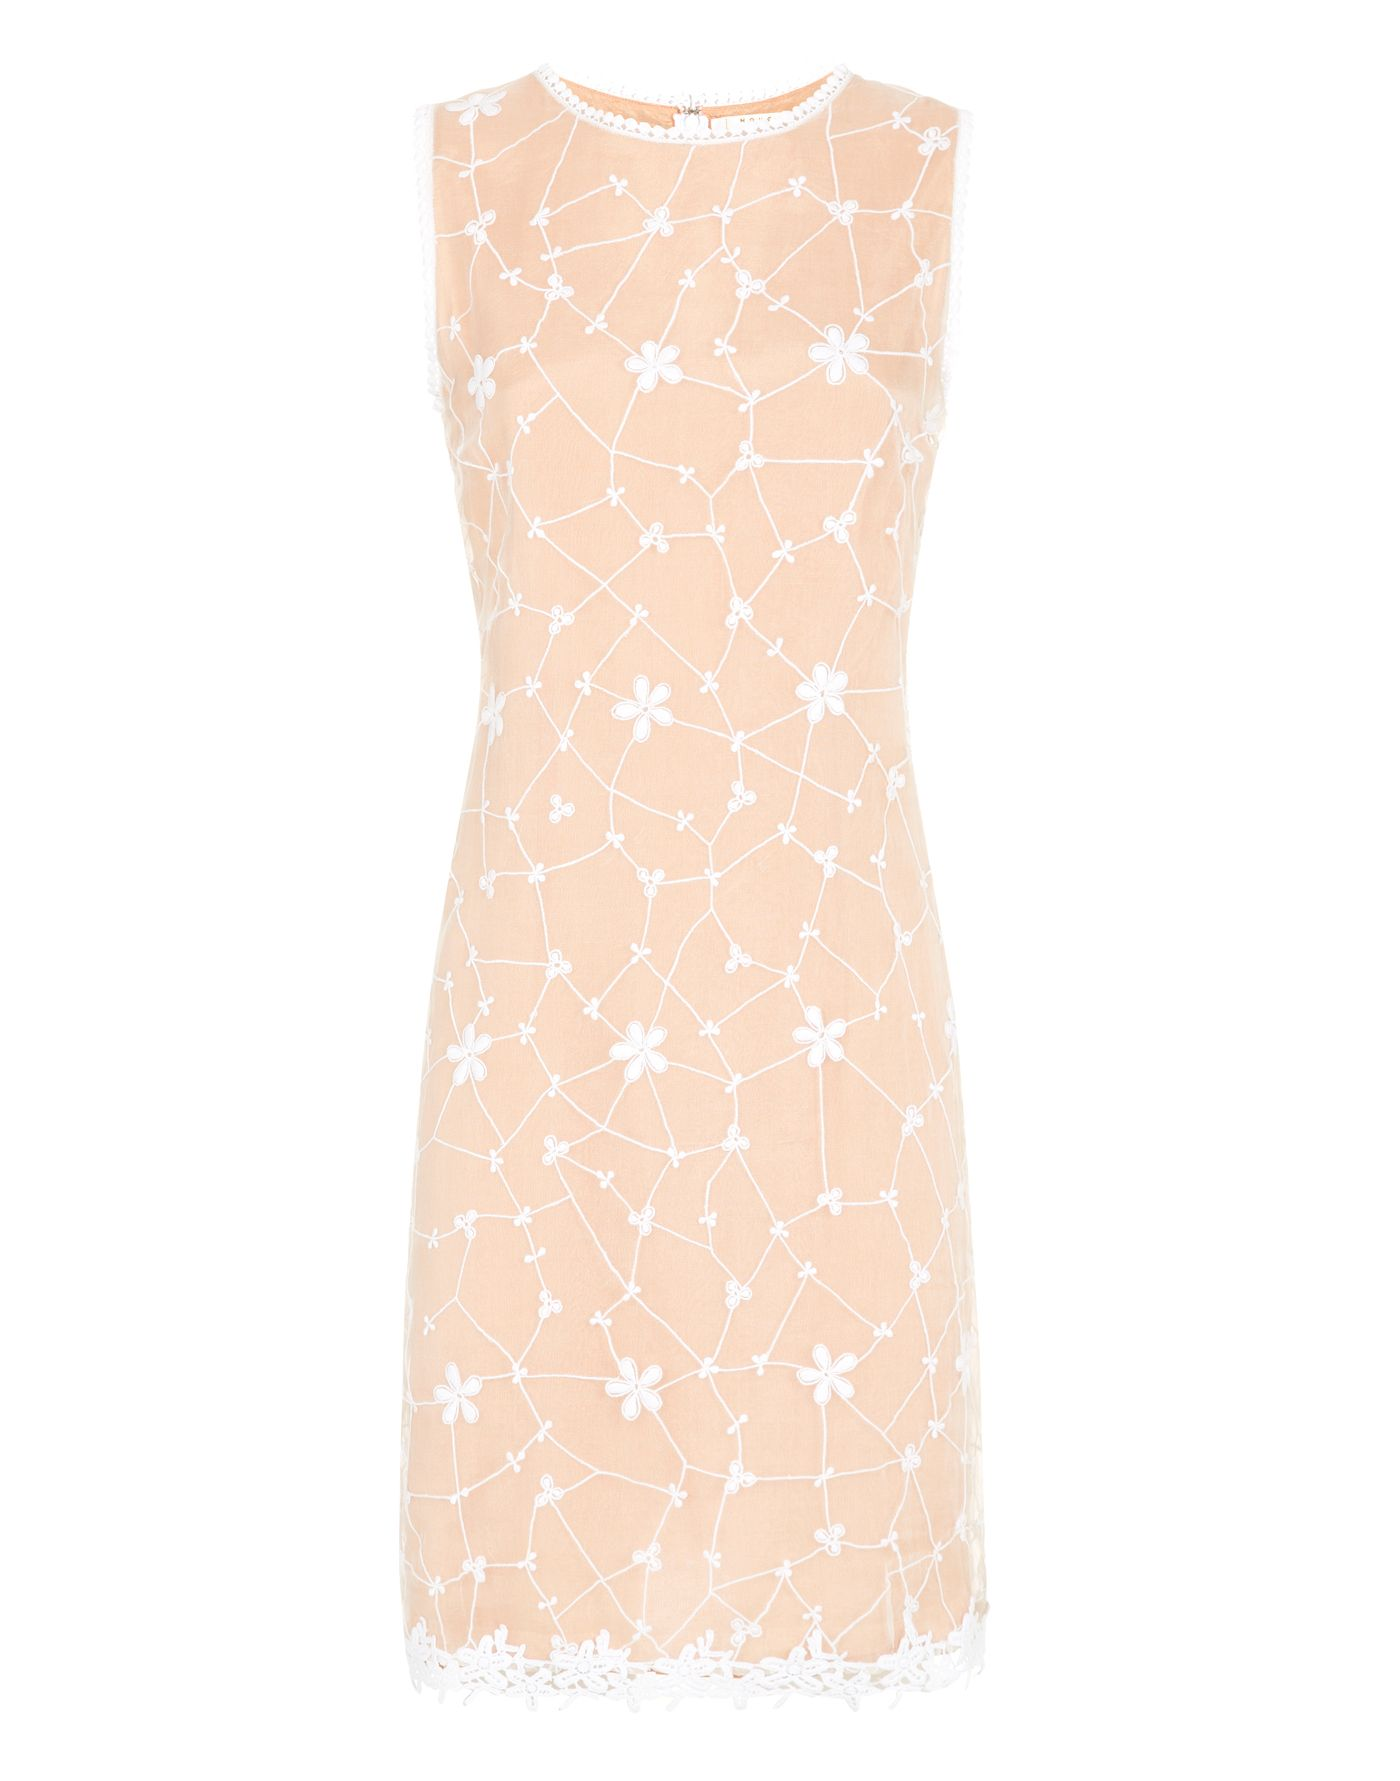 All over embroidered dress